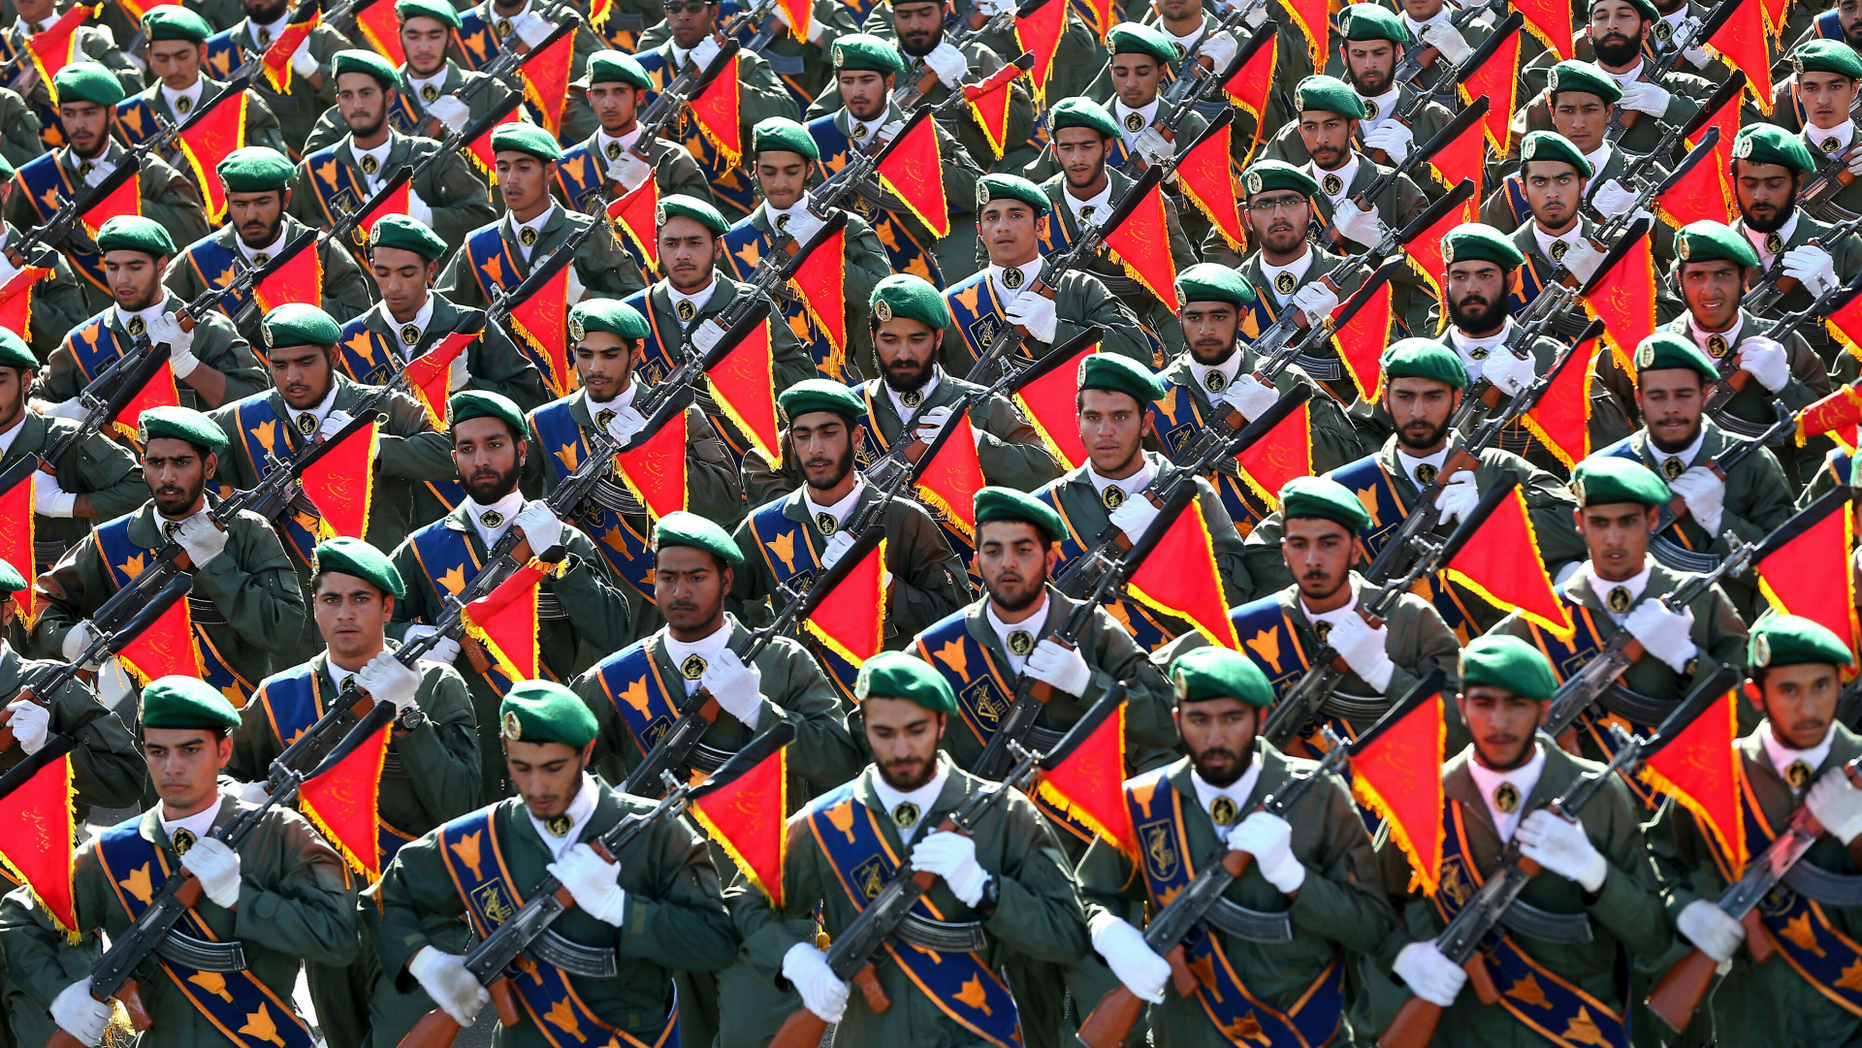 """FILE - In this Sept. 21, 2016 file photo, Iran's Revolutionary Guard troops march in a military parade marking the 36th anniversary of Iraq's 1980 invasion of Iran, in front of the shrine of late revolutionary founder Ayatollah Khomeini, just outside Tehran, Iran. The Trump administration is preparing to designate Iran's Revolutionary Guards Corps a """"foreign terrorist organization"""" in an unprecedented move that could have widespread implications for U.S. personnel and policy. U.S. Officials say an announcement could come as early as Monday, April 8, 2019, following a months-long escalation in the administration's rhetoric against Iran. The move would be the first such designation by any U.S. administration of an entire foreign government entity. (AP Photo/Ebrahim Noroozi, File)"""